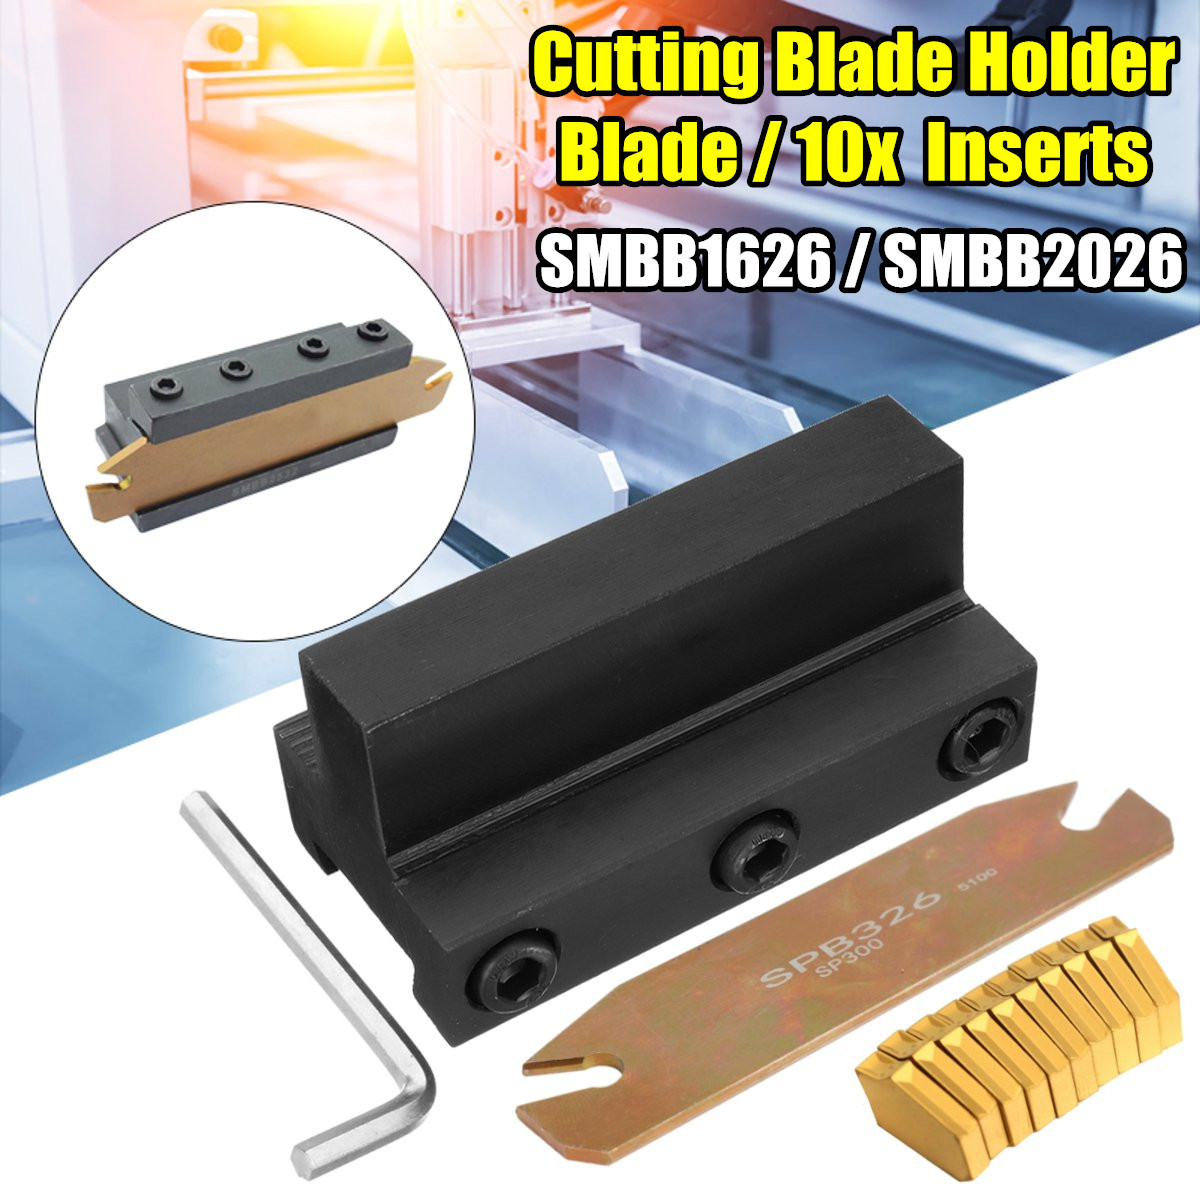 SMBB1626/SMBB2026 Cutting Blade Holder+Cut-Off Cutter Blade Inserts For GTN-3